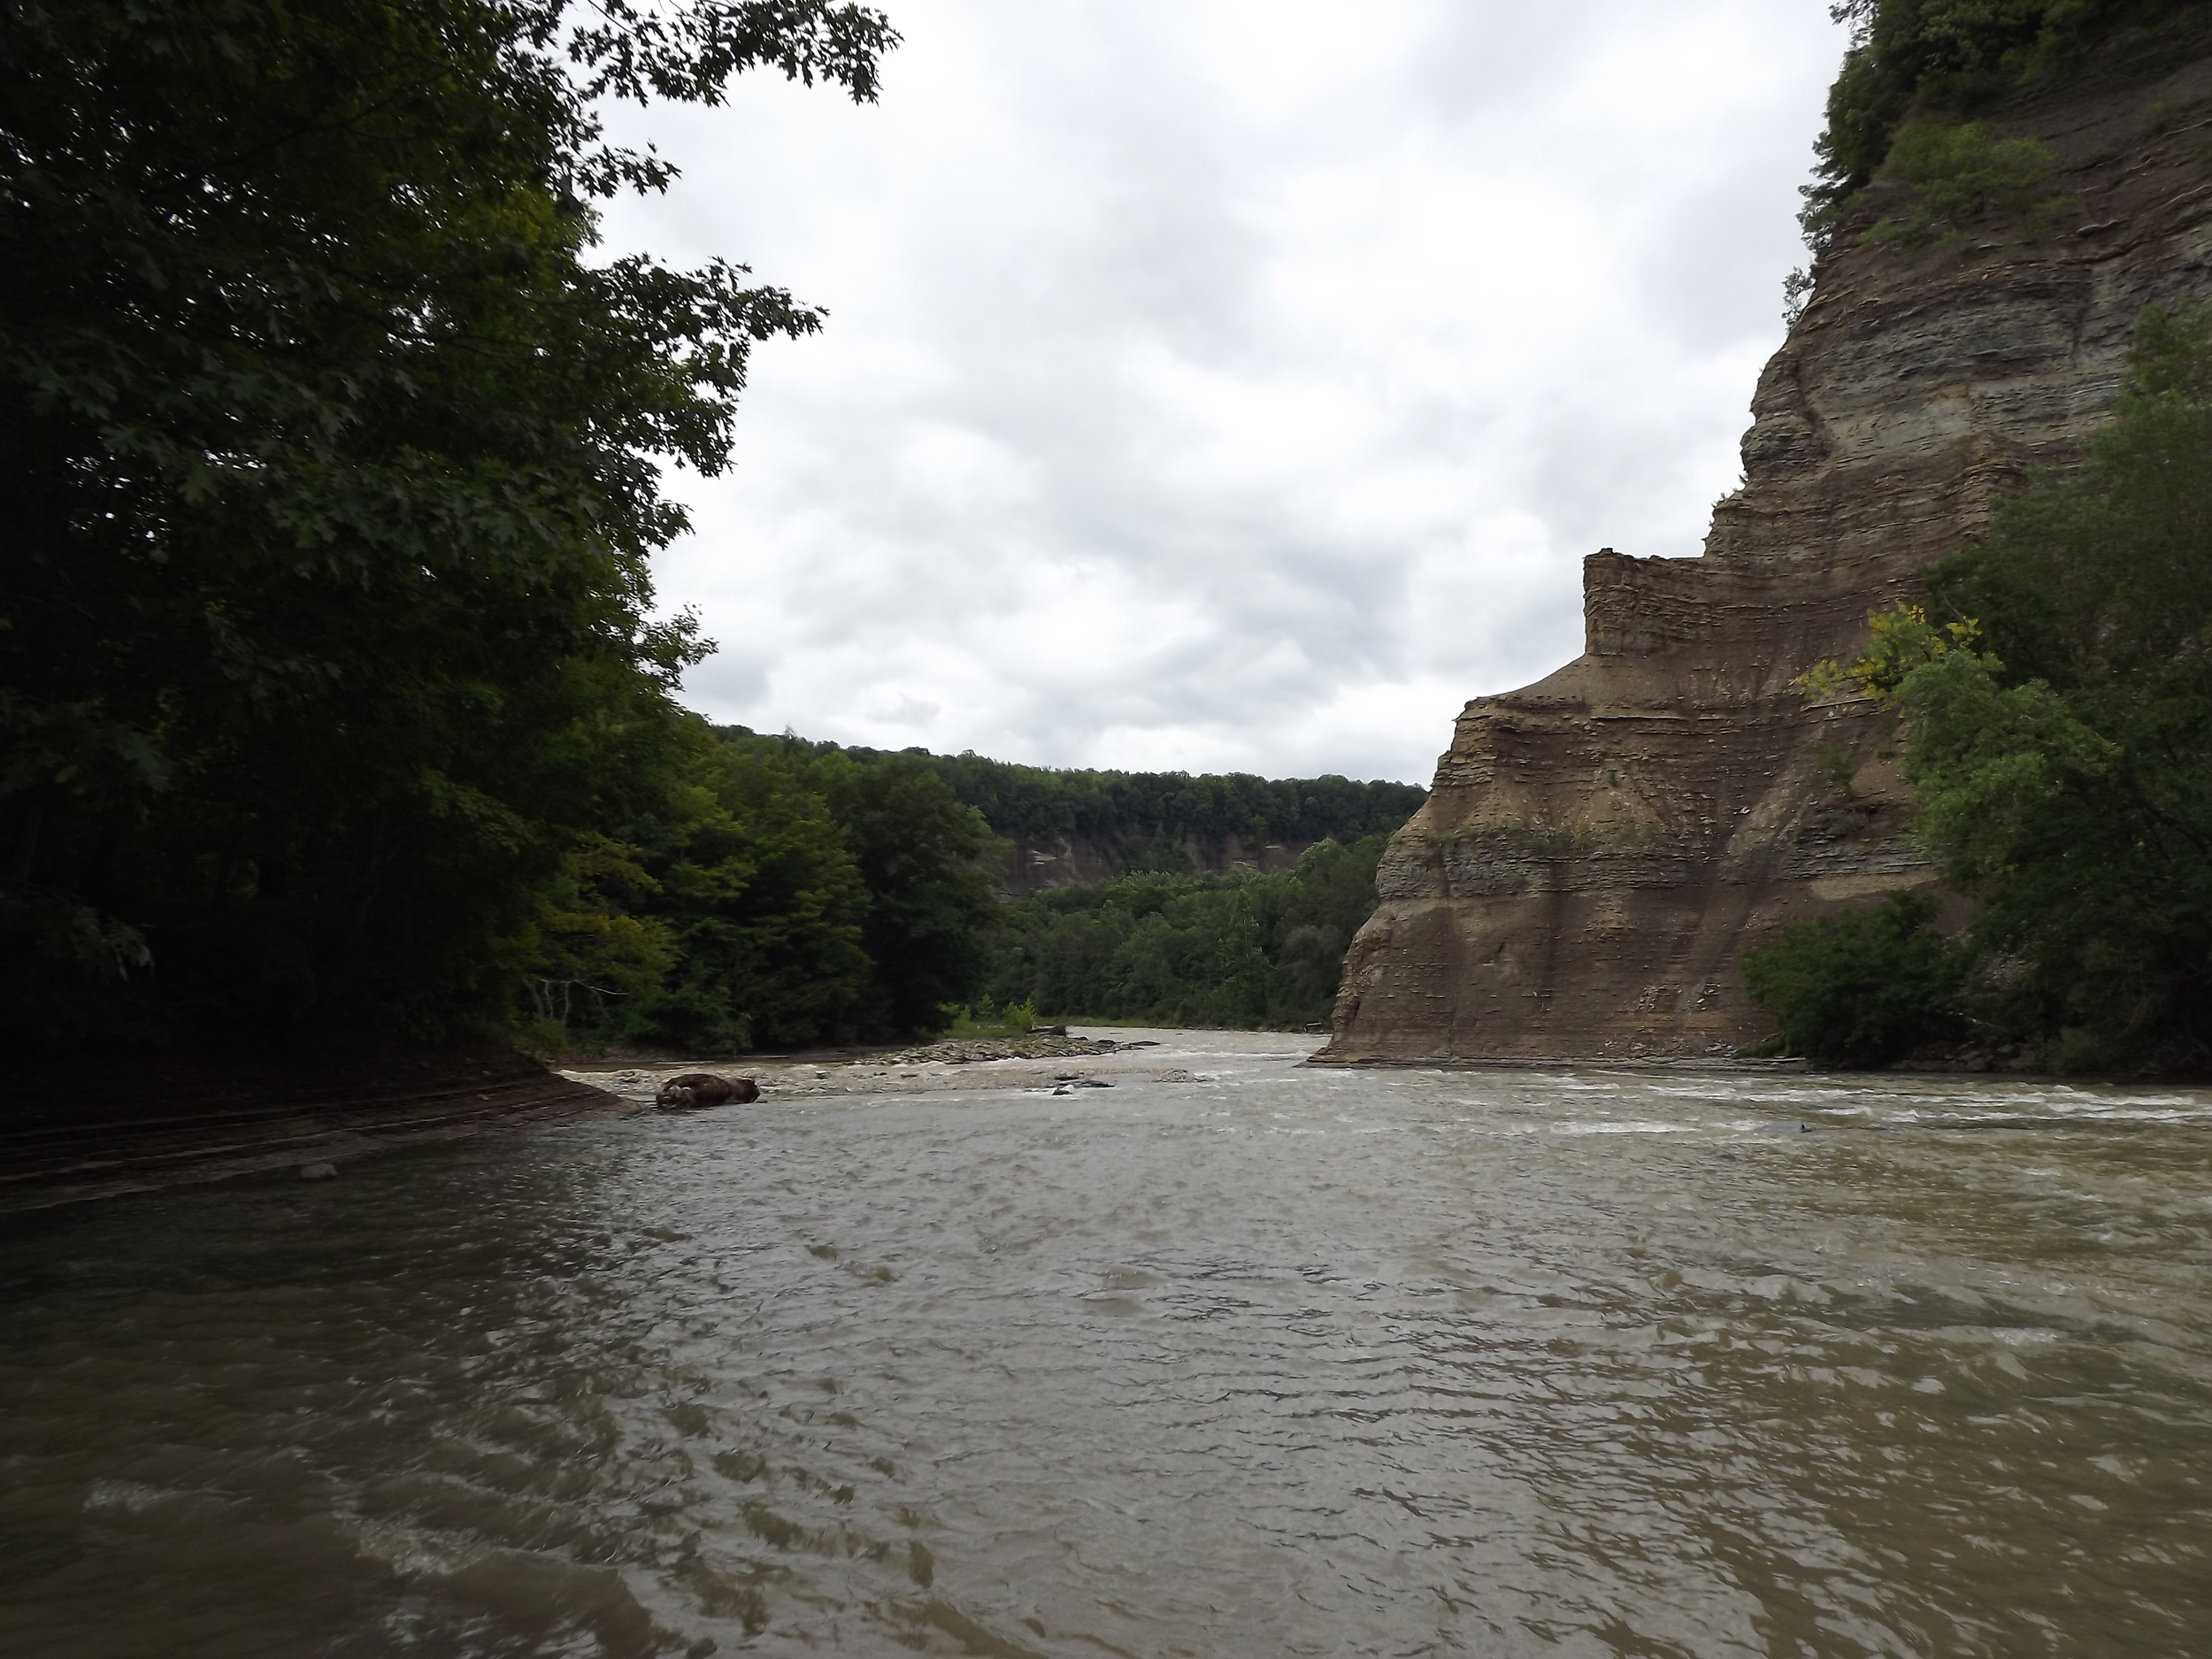 """Confluence of Main Branch and South Branch of Cattaraugus Creeks - The confluence of the Main and South branches is a beautiful place, even if the flat light in this picture doesn't do it justice. It's interesting that the South branch gets real wide and very shallow just before the confuence whereas the Main branch gets narrower and deeper with a pronounced stream channel of swifter water. Many people call the cliff on the right """"Indian Head,"""" since the shape of the cliff vaguely resembles a human head."""